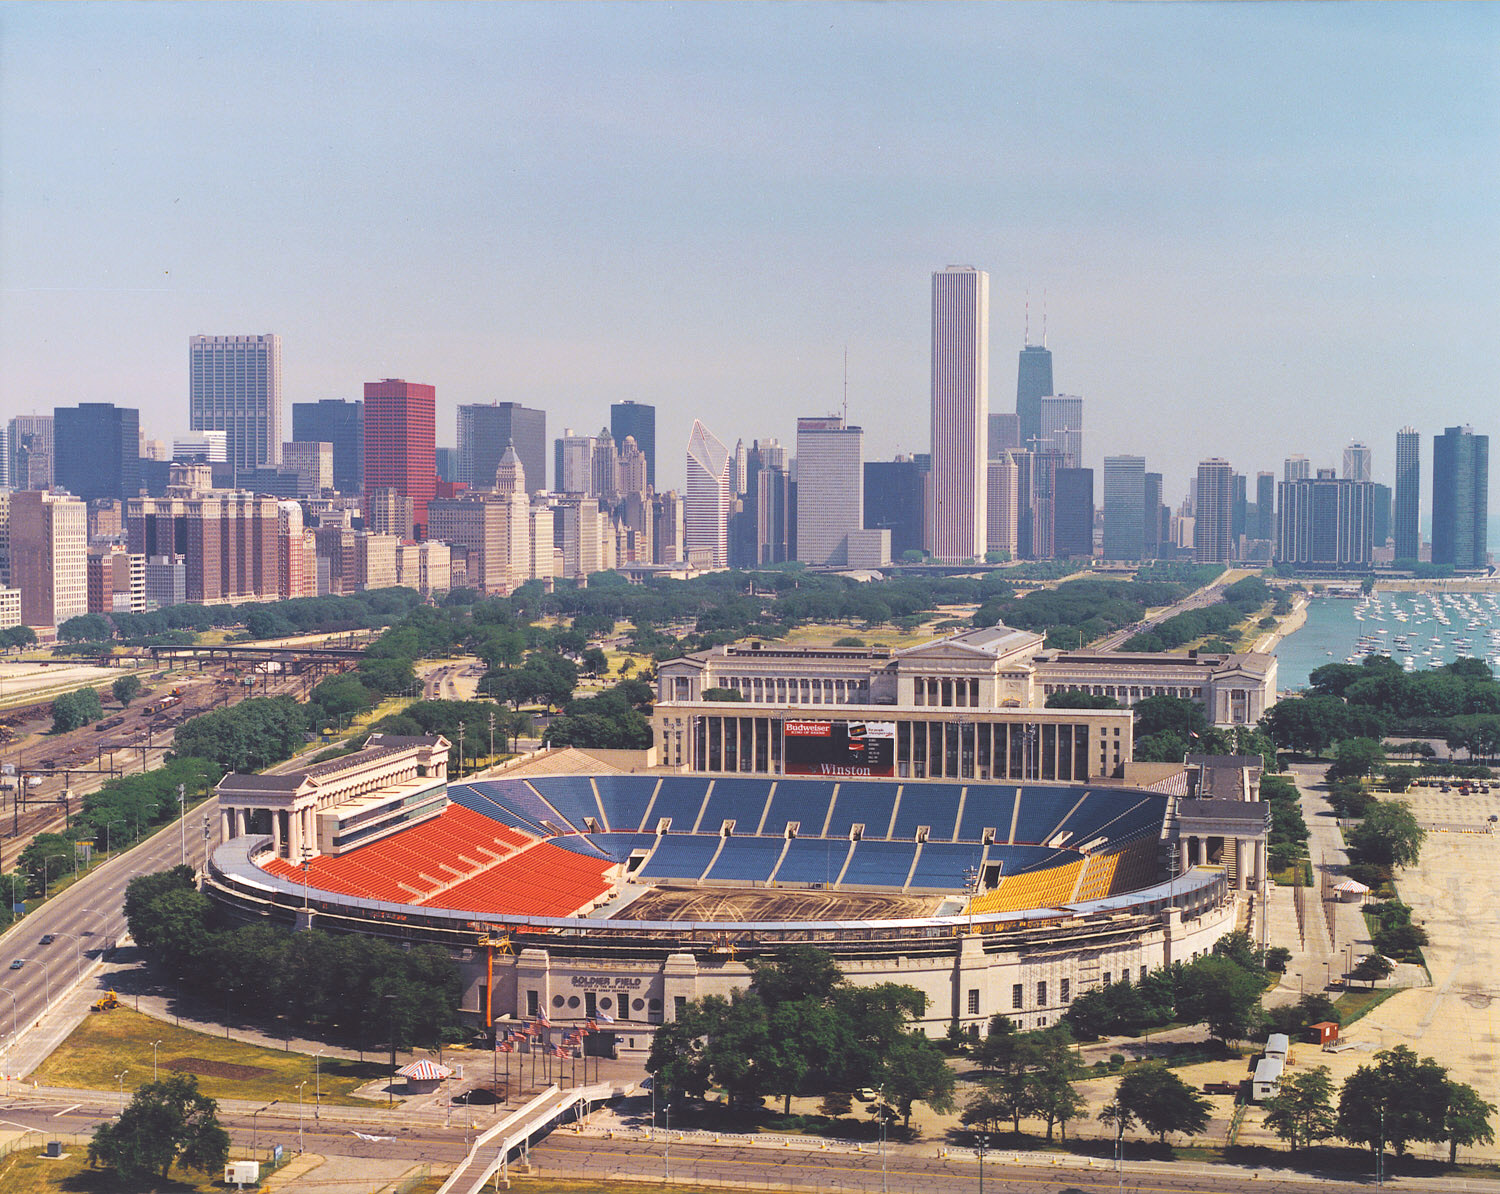 Soldier field before and after renovation